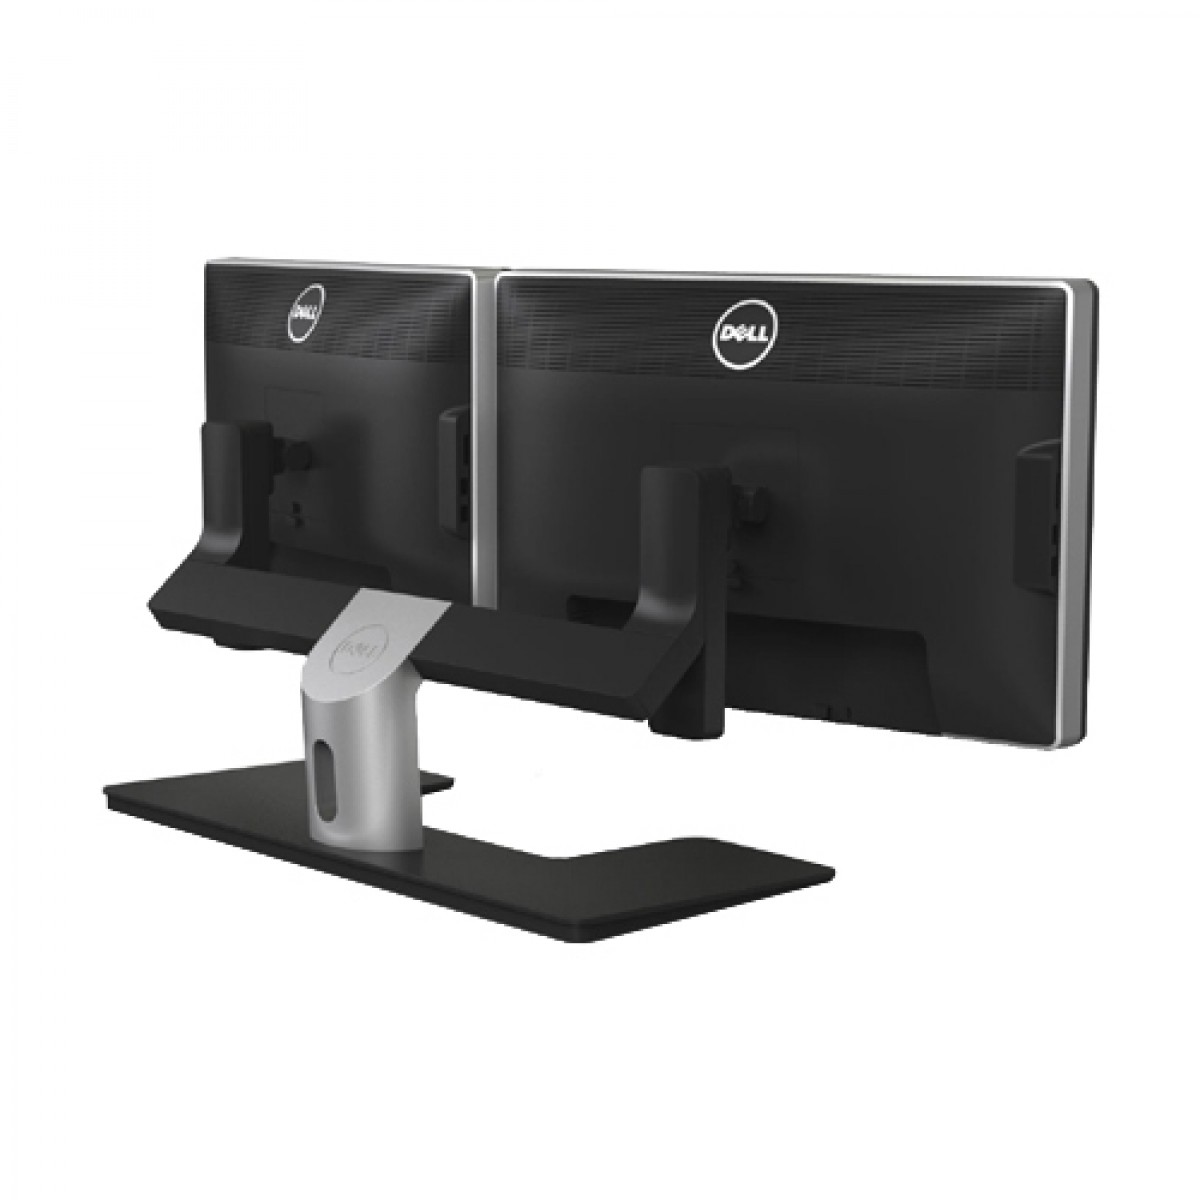 Dell Mds14 Dual Monitor Stand Stand For 2 Monitors